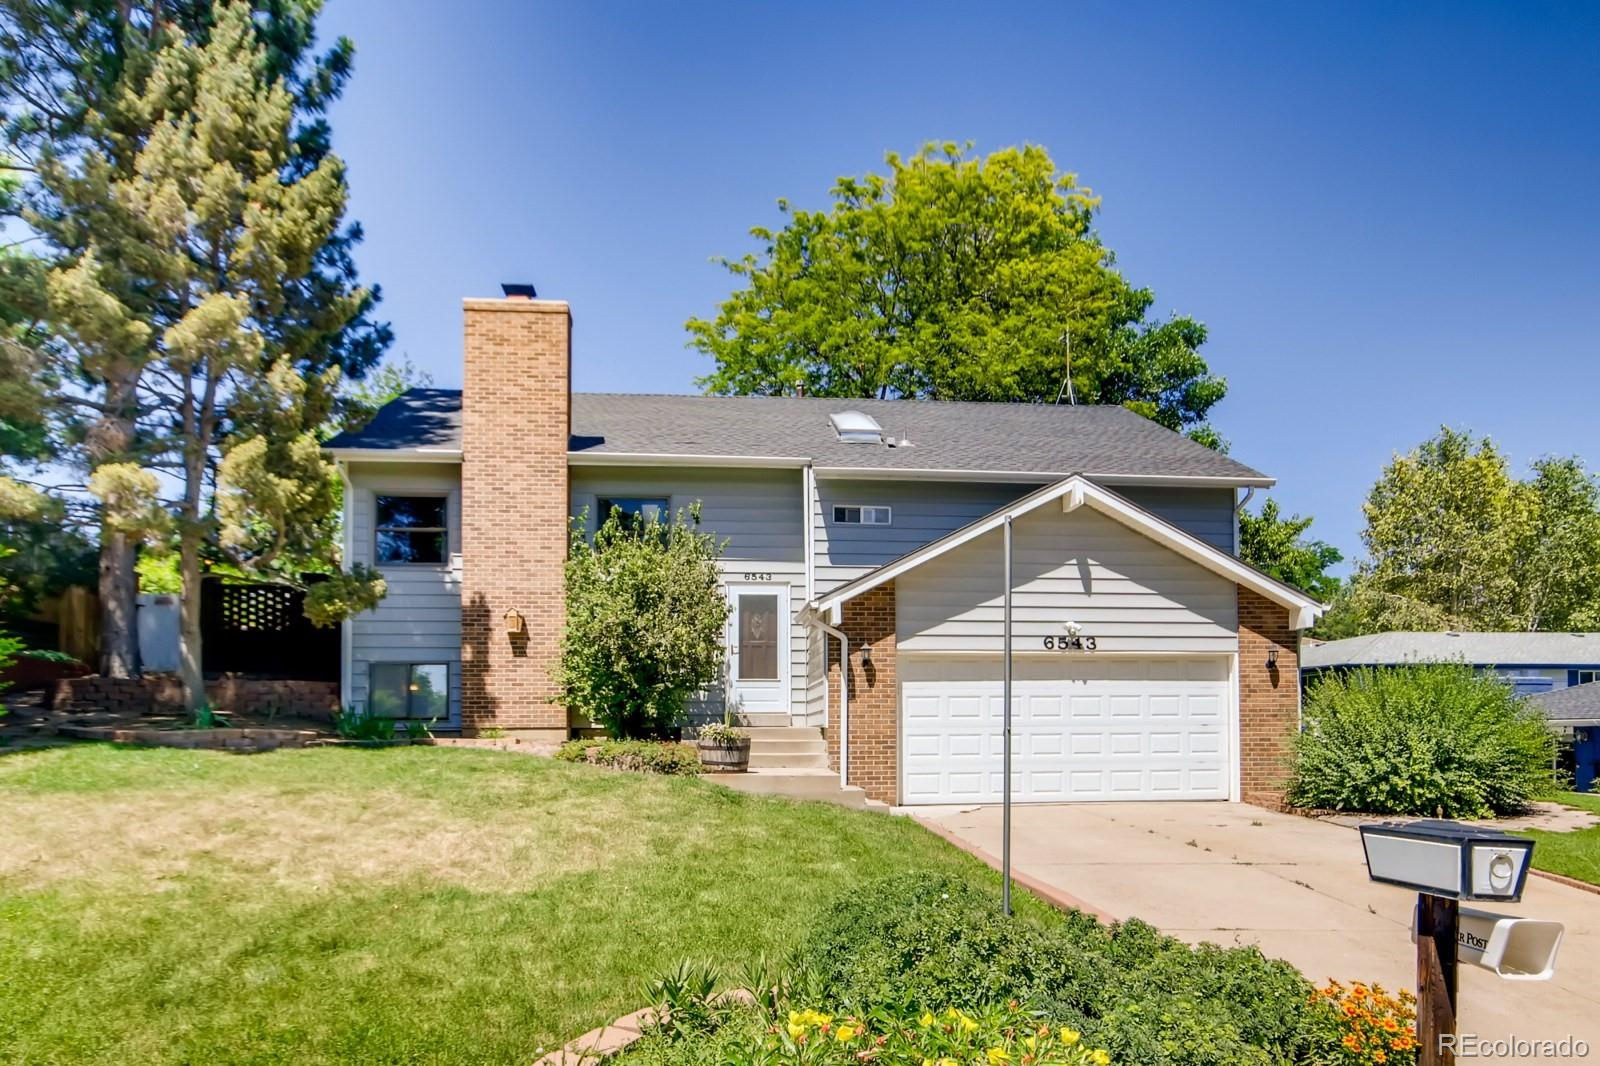 6543 Owens Court Property Photo - Arvada, CO real estate listing